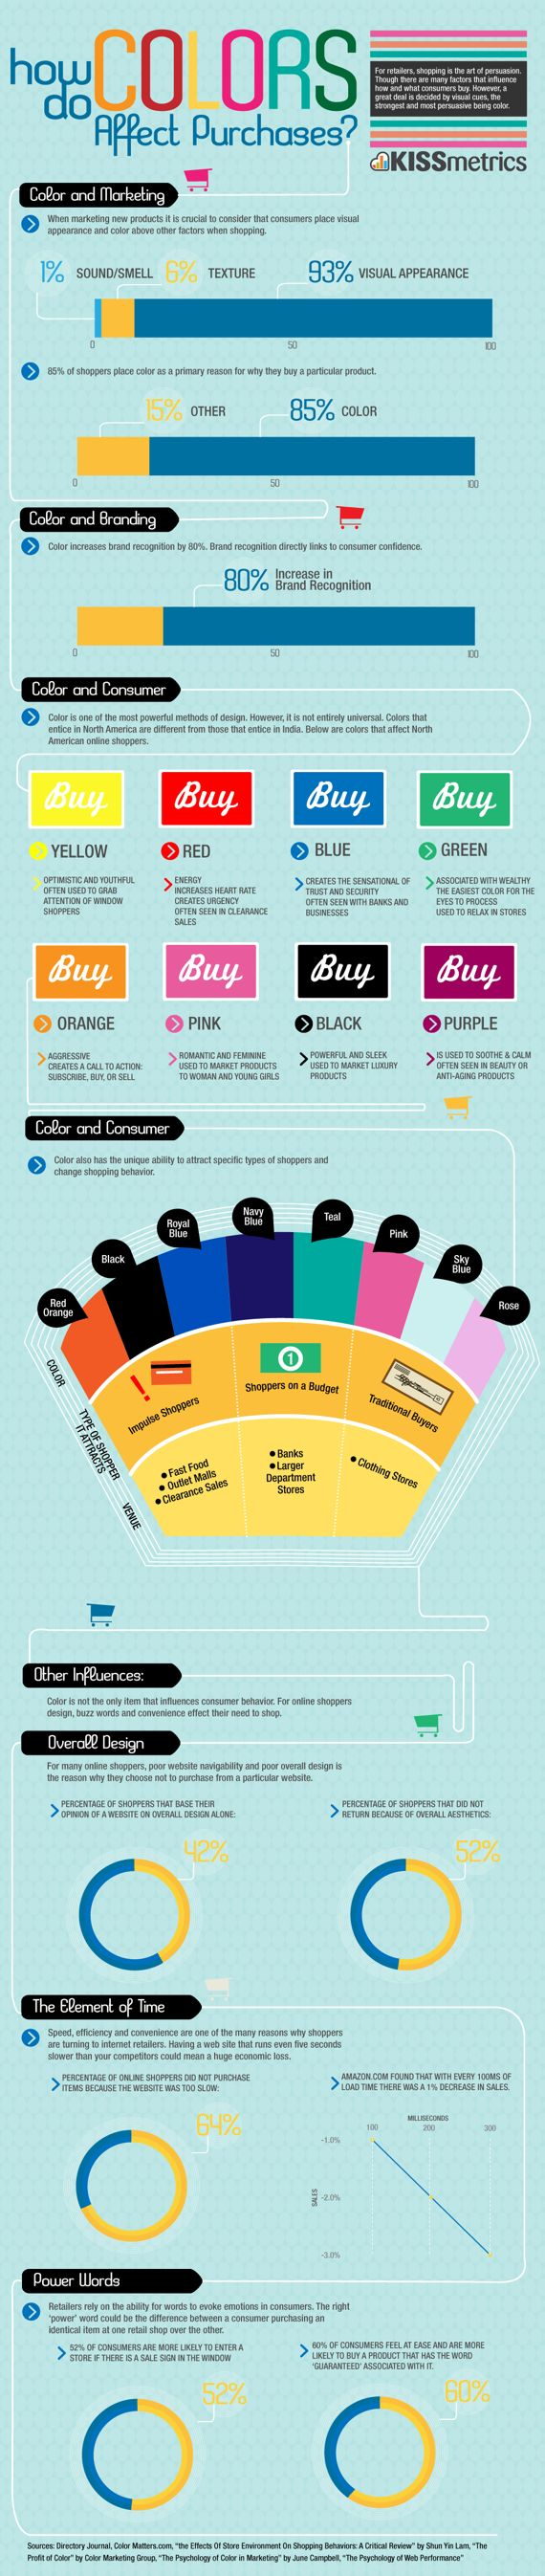 How colors affect purchasing behavior #Infographic